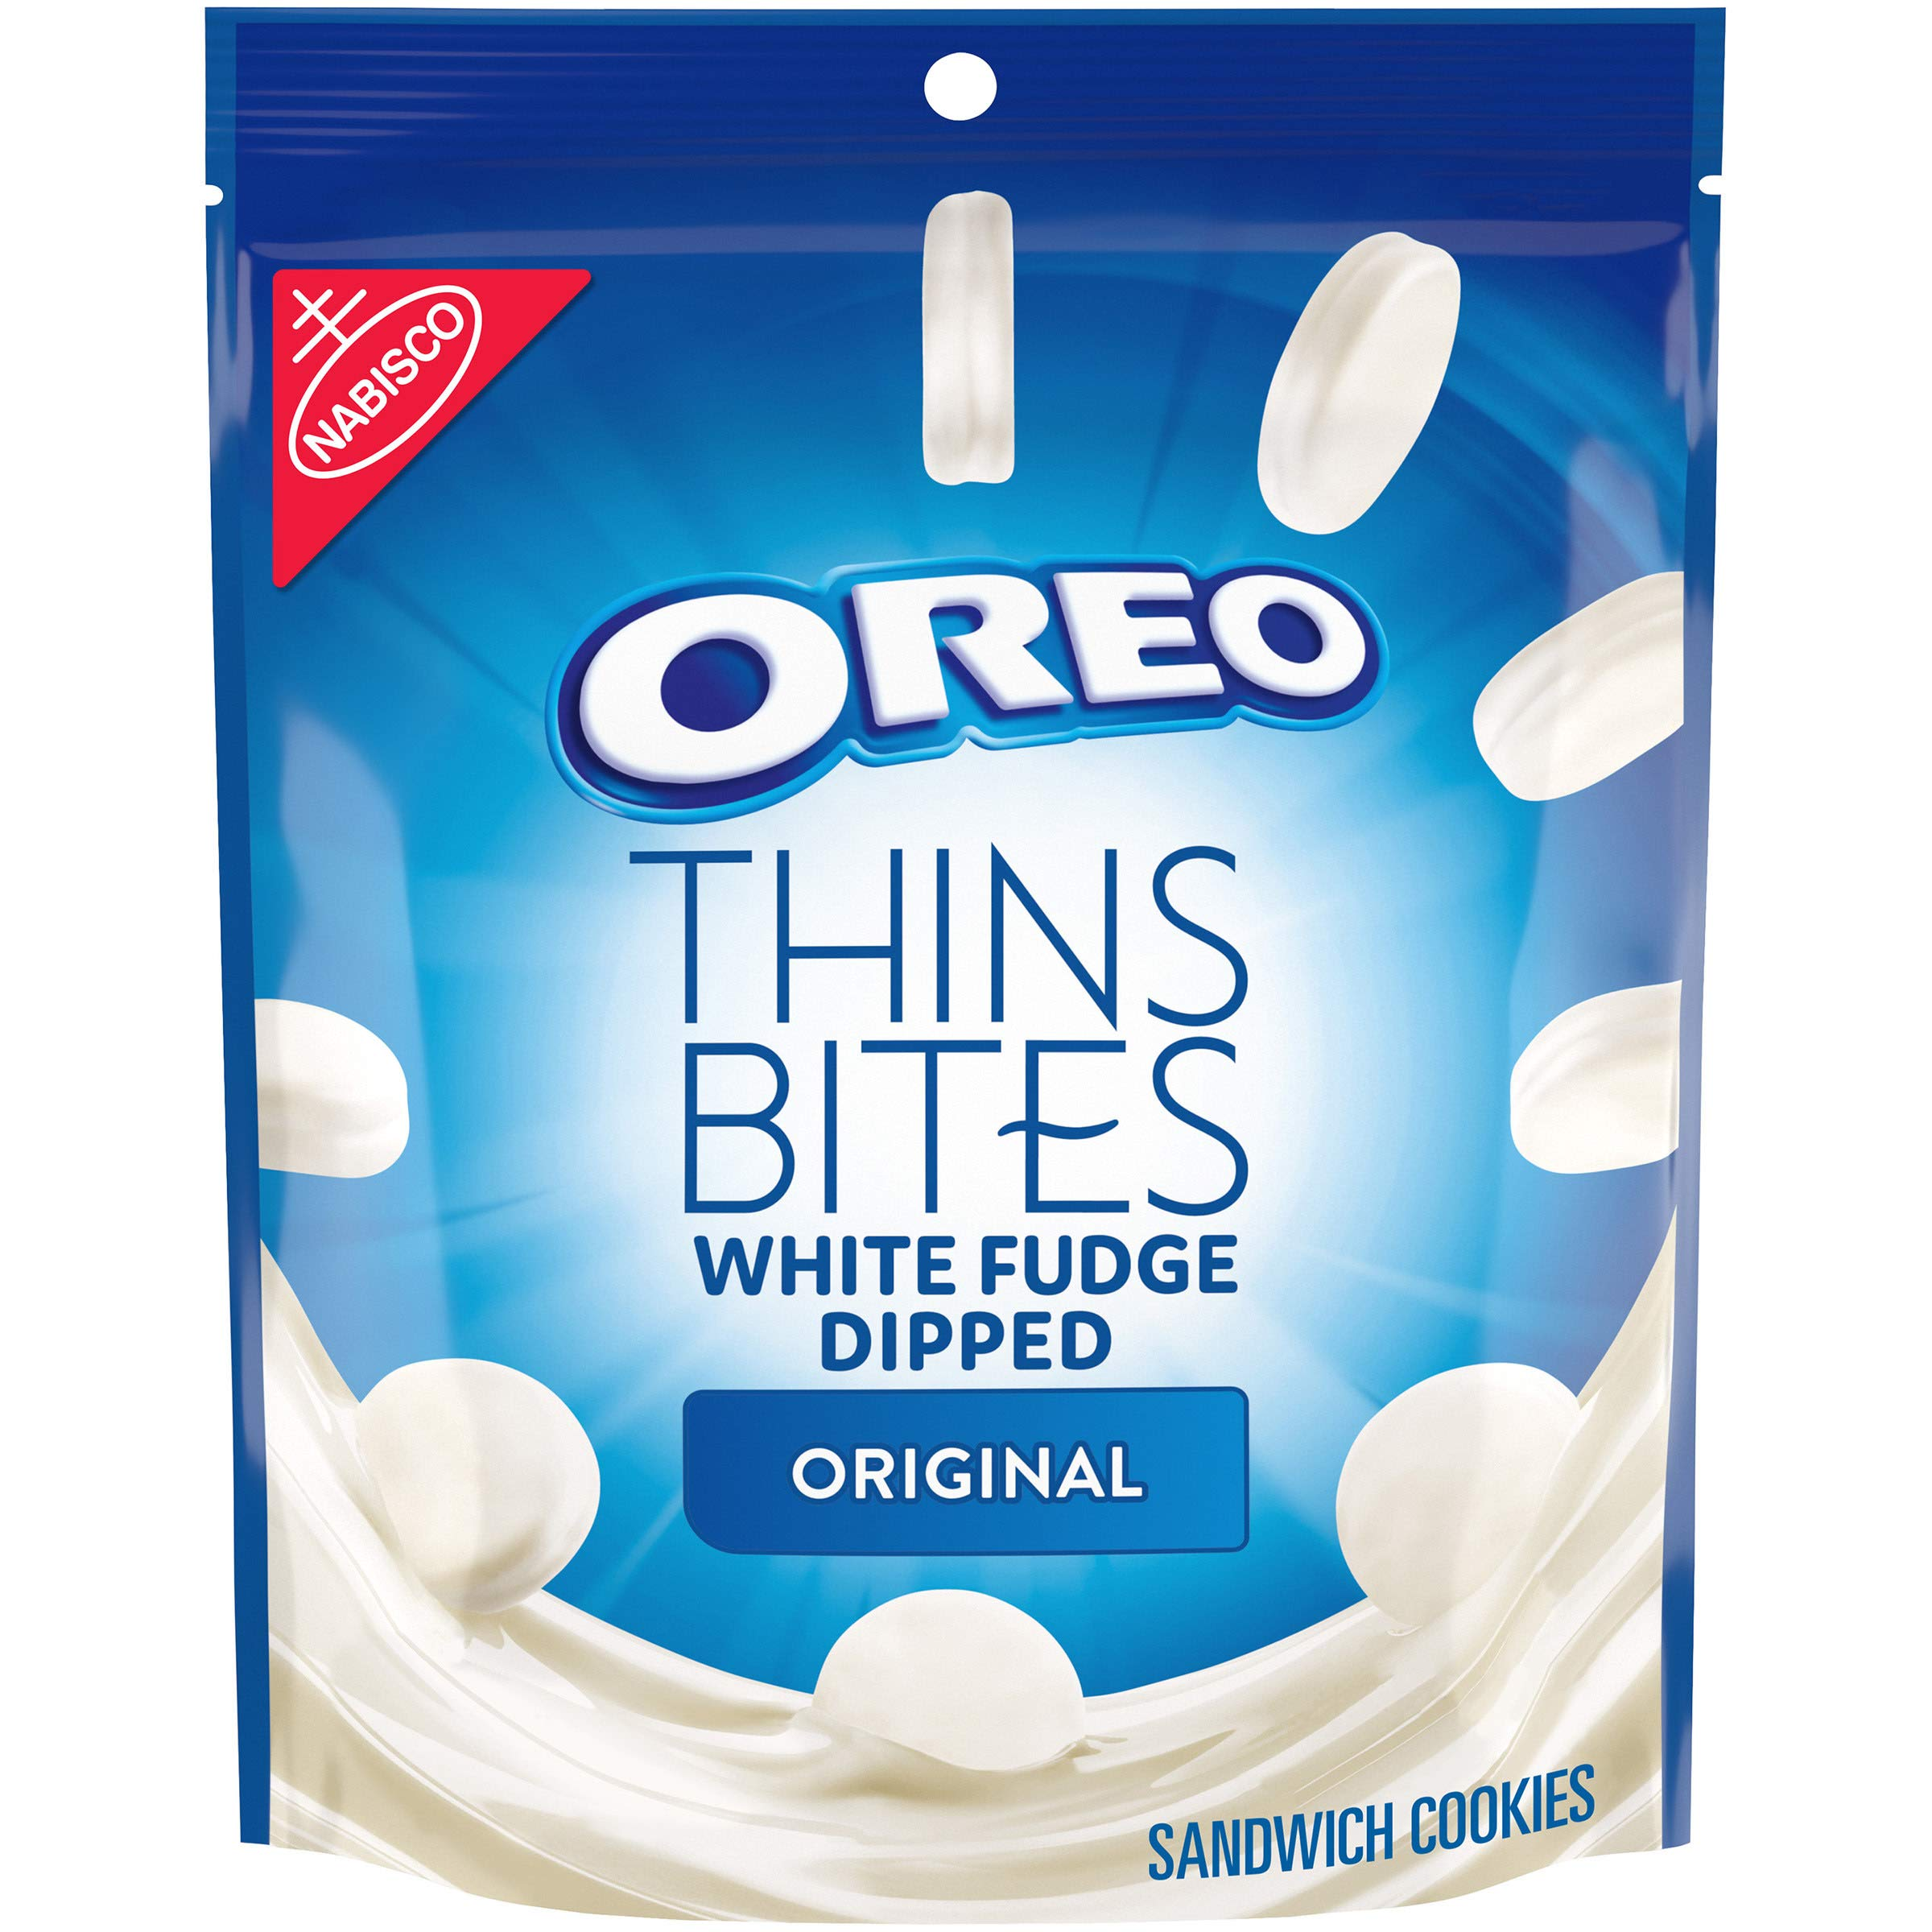 OREO Thins Bites White Fudge Dipped Chocolate Sandwich Cookies, Original Flavor, 1 Resealable 6.4 oz Pack